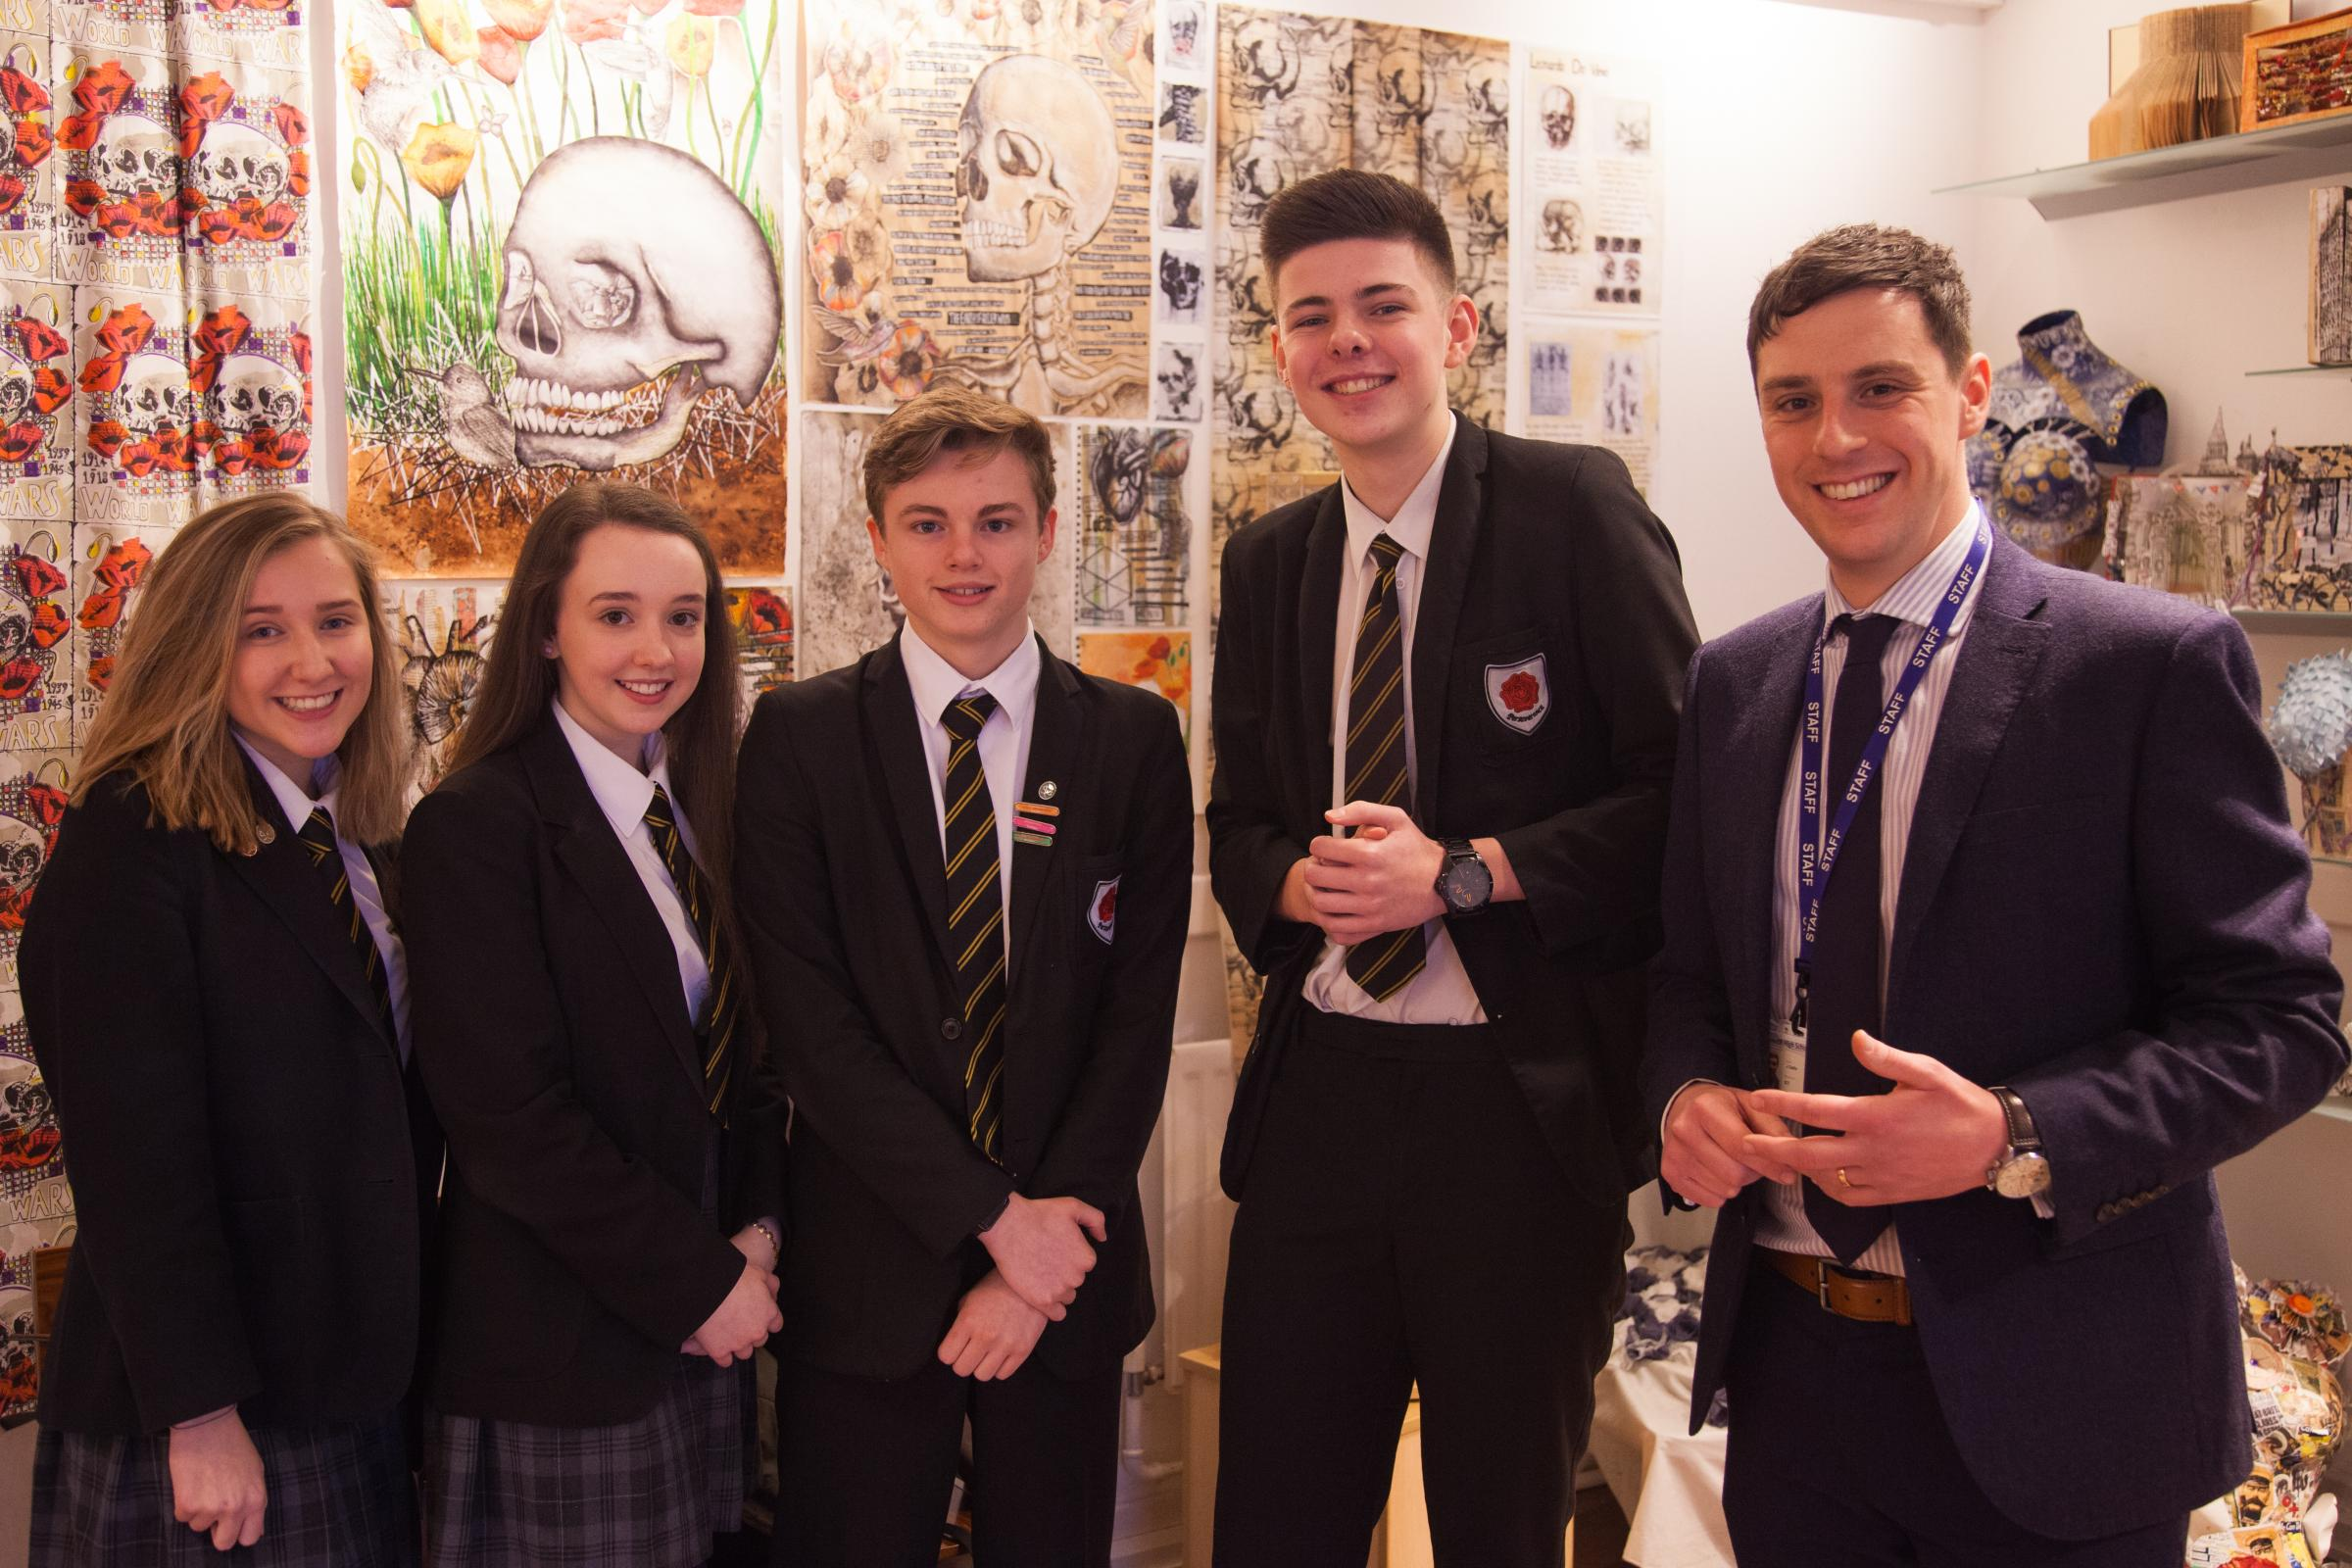 Left, Nicola Speakman, Isabel Griffiths, Ethan Turton, Connor Hawker and Principal John Carlin